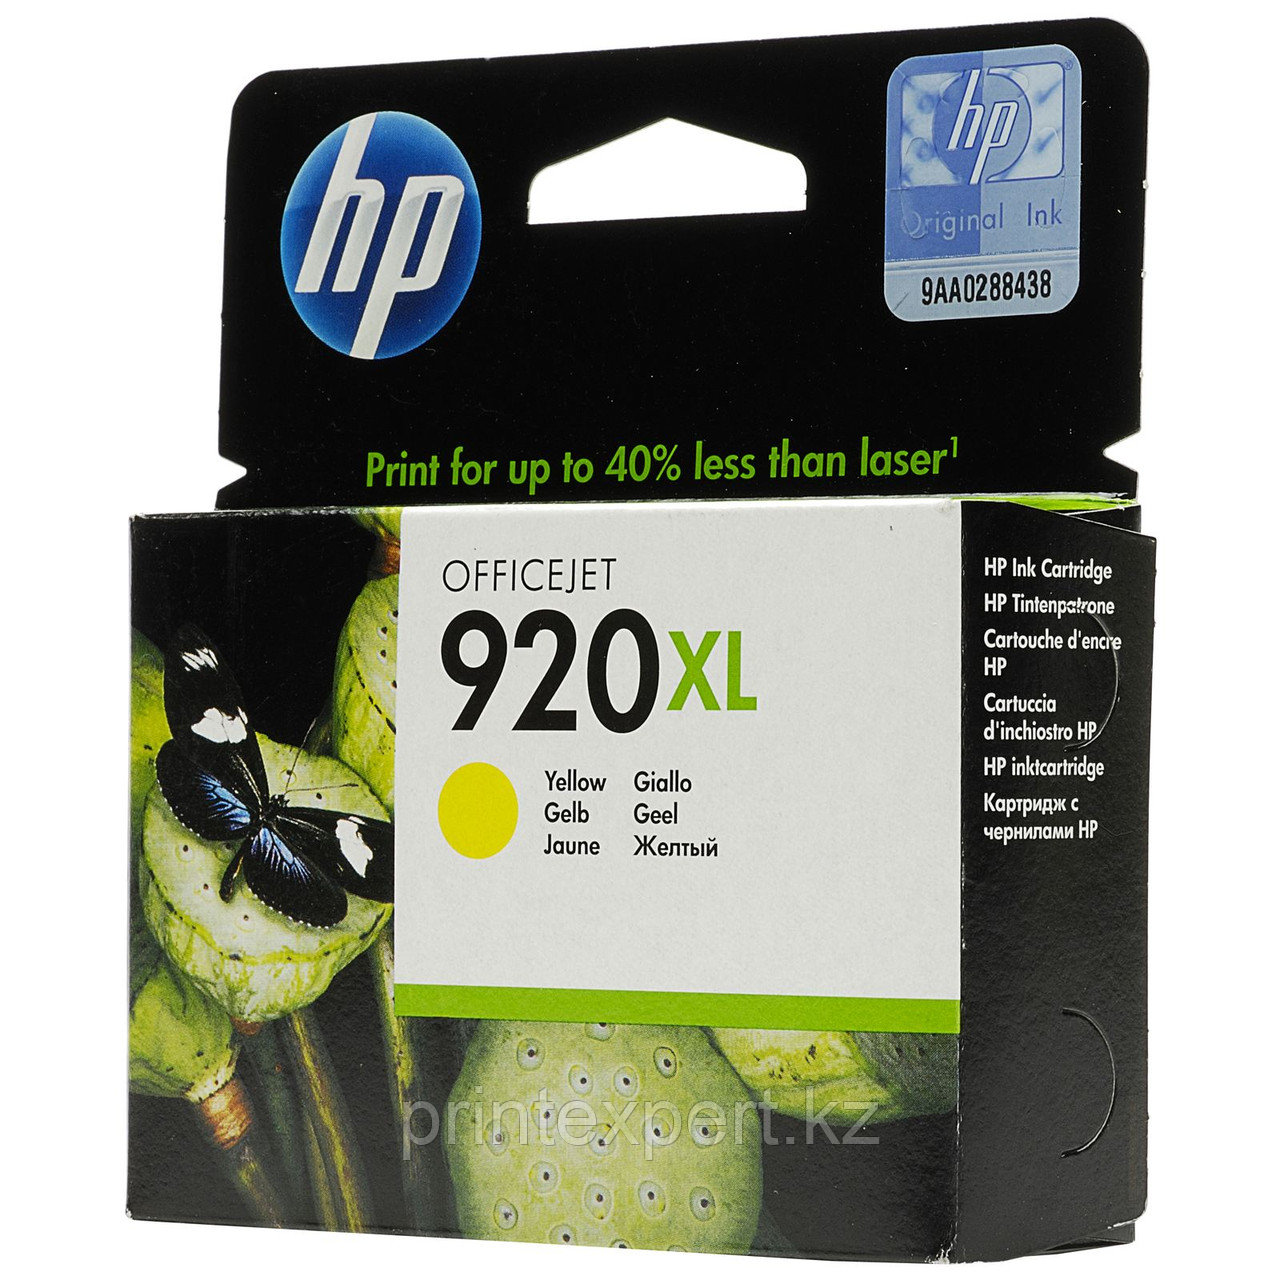 HP CD974AE Yellow Ink Cartridge №920XL for Officejet 6500/7000, 6 ml, up to 700 pages. ;